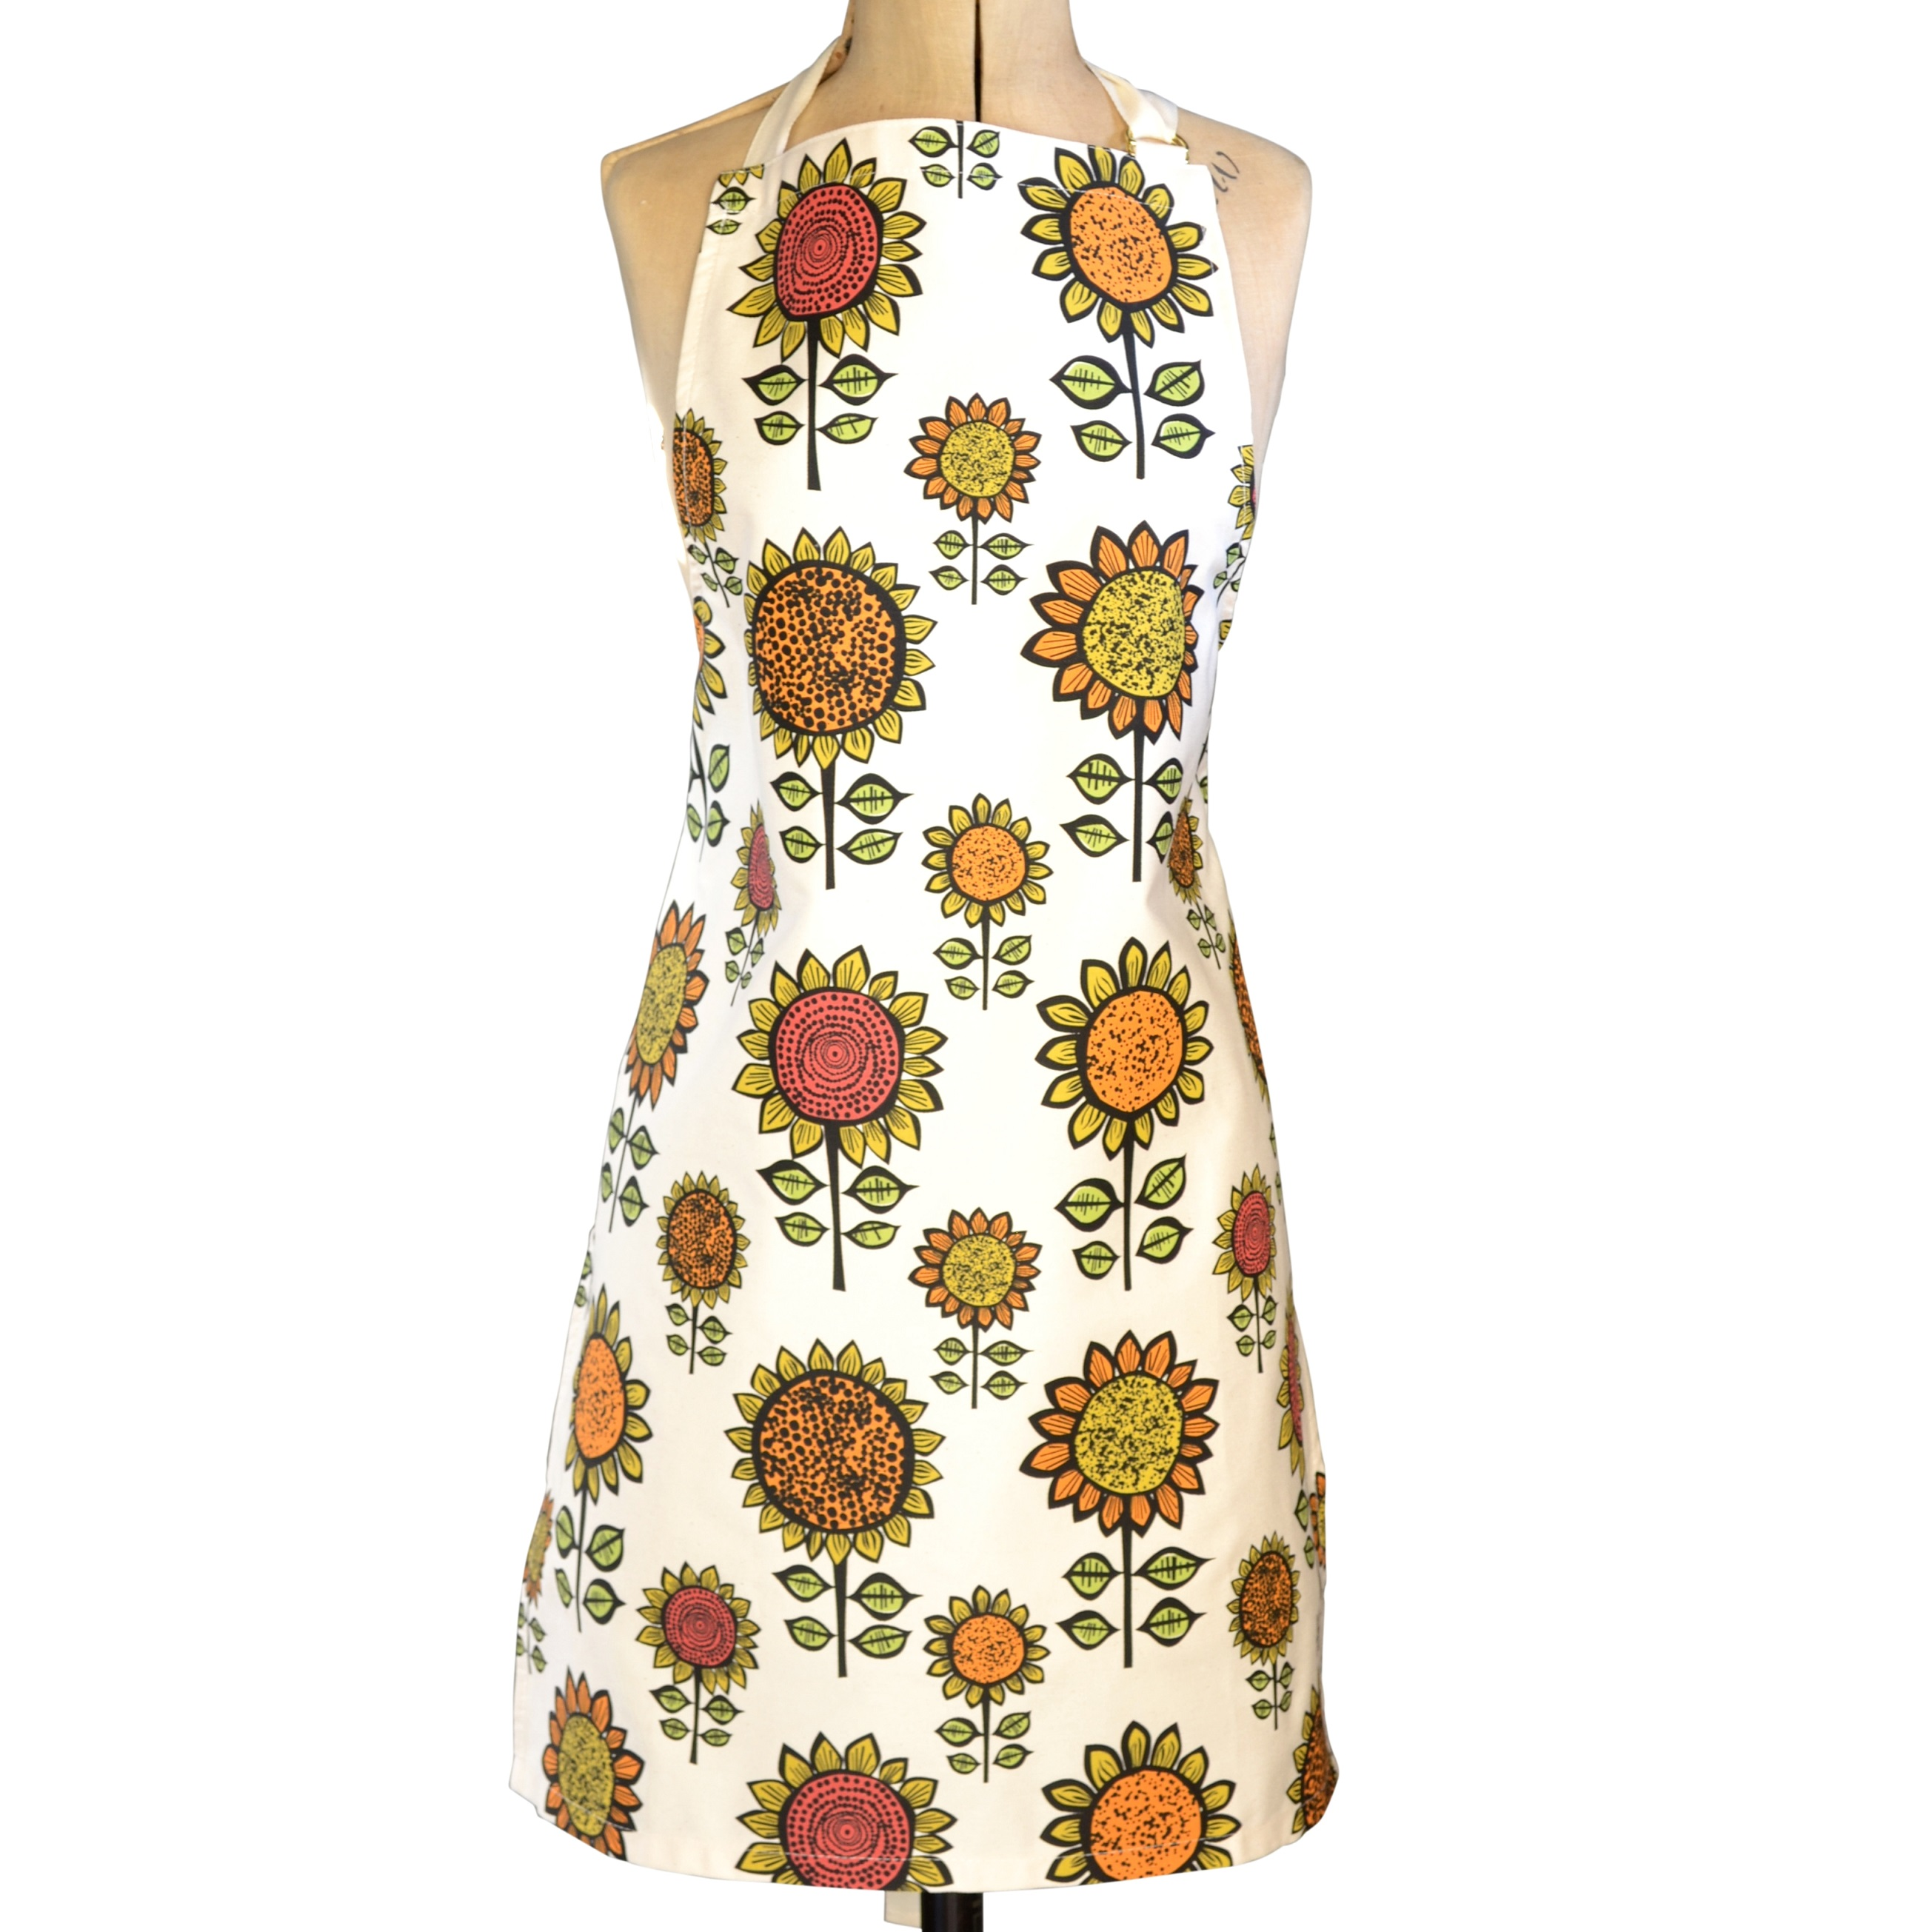 Hannah Turner Sunflower Apron